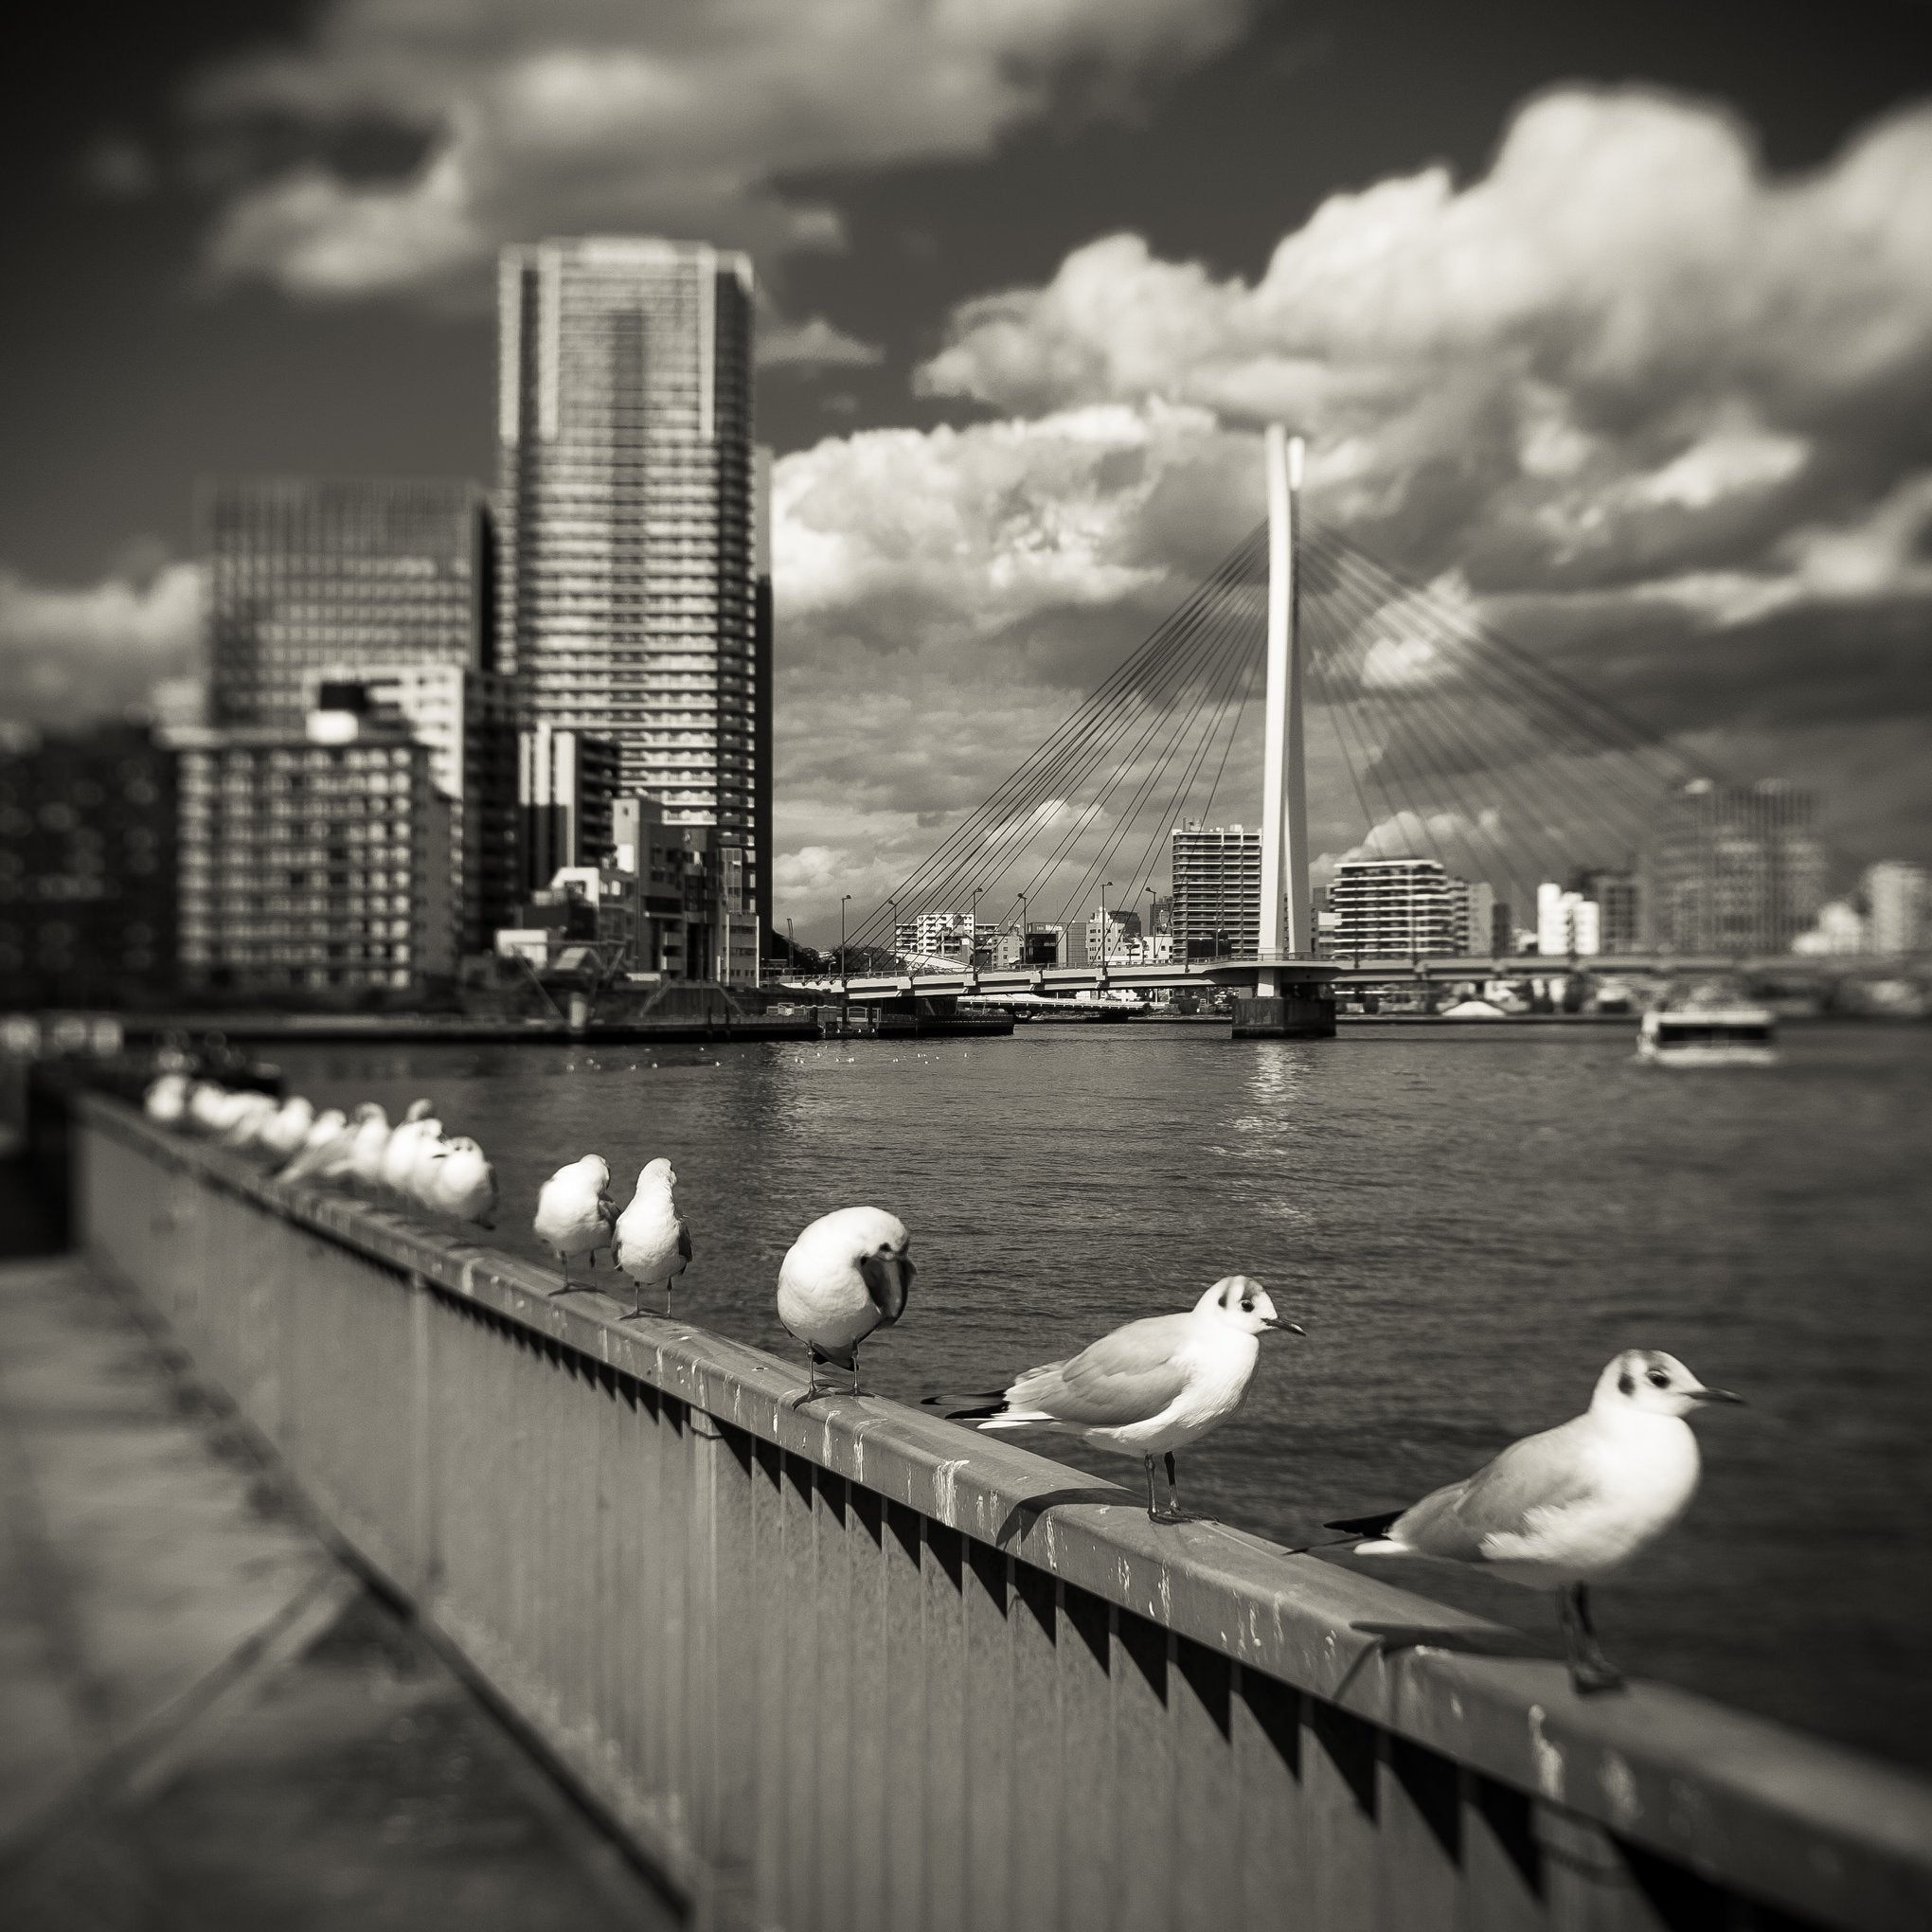 seagulls sitting on a concrete railing skyline bridge skyscrapers black and white photography Lensbaby featured photos of the week